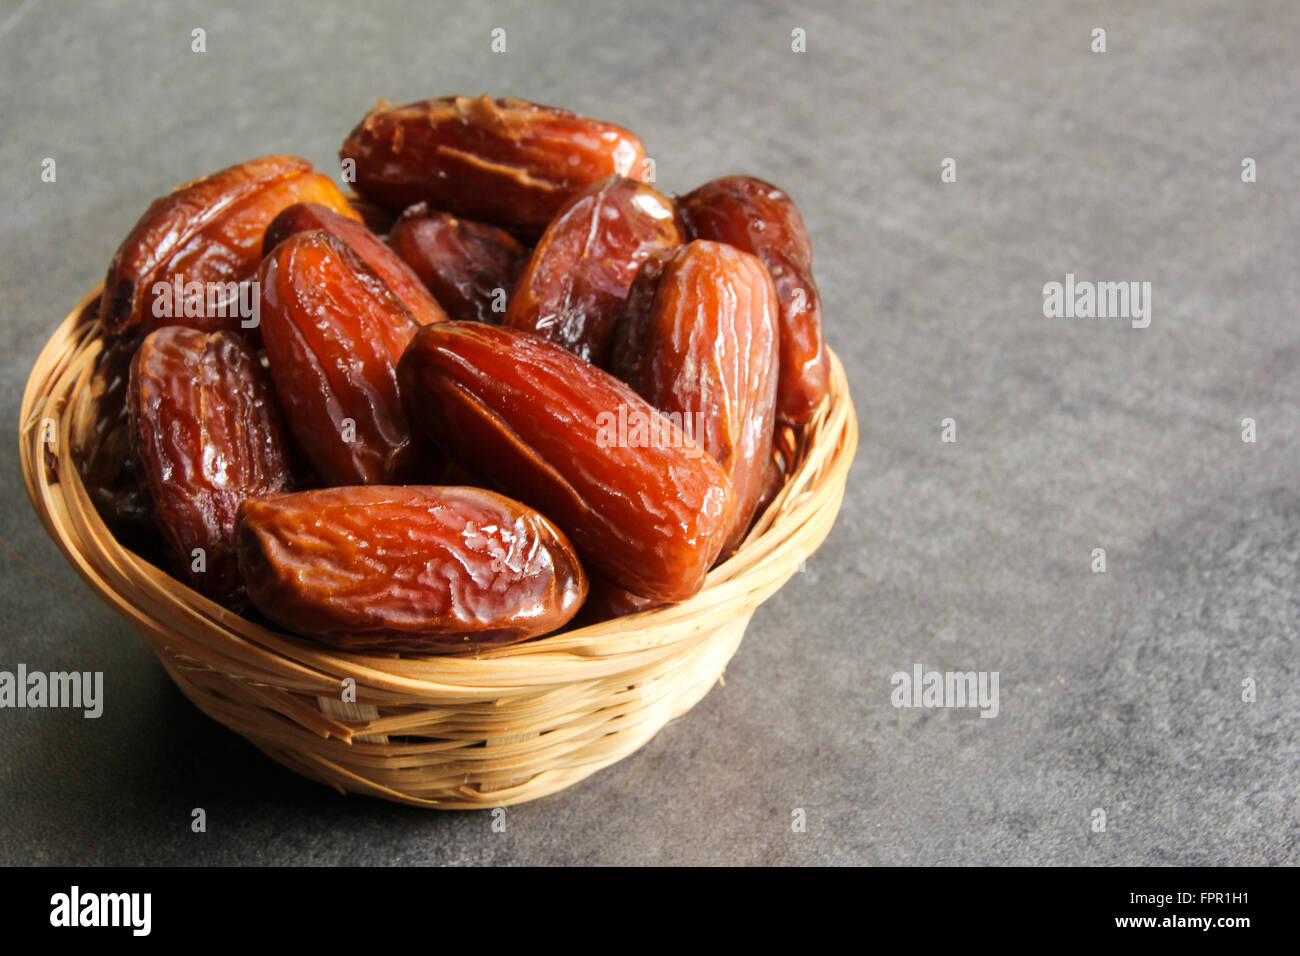 Dried Date Healthy snack - Stock Image